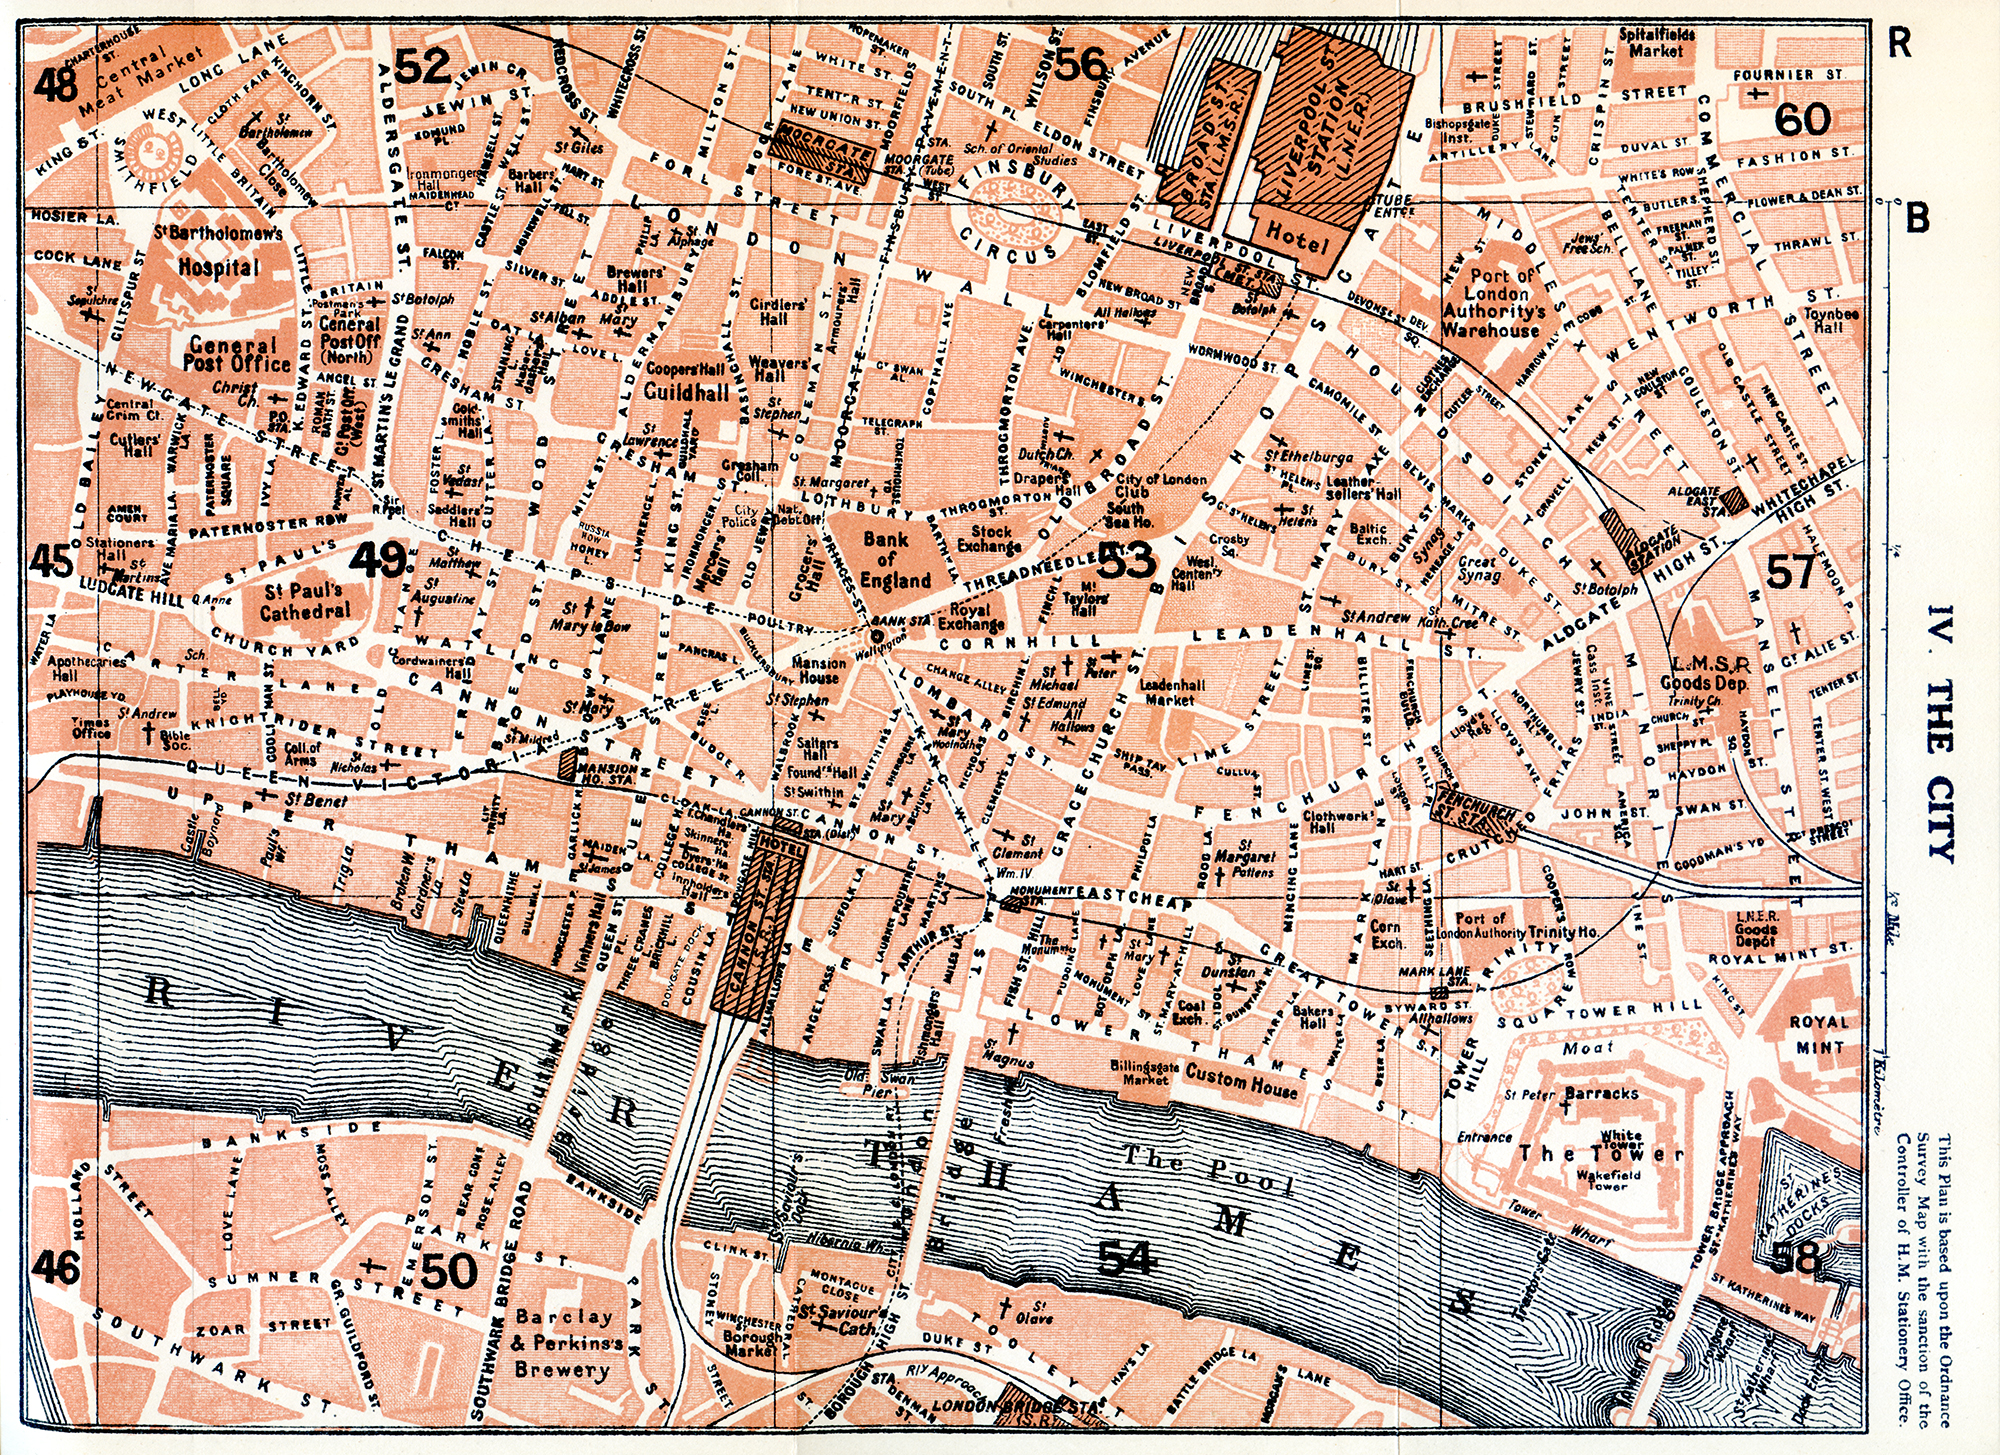 london the city map in public domain free royalty free royalty free